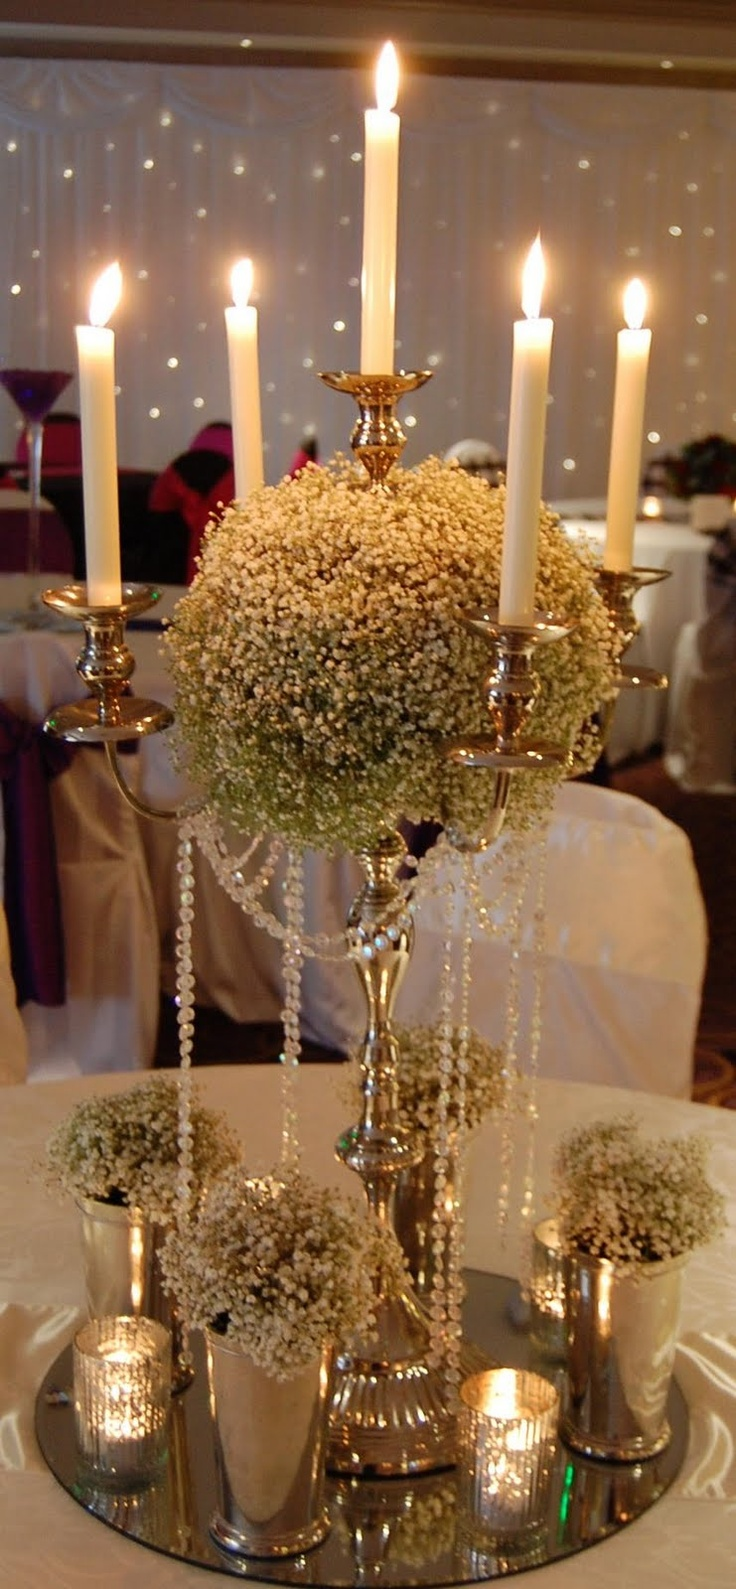 25 Cute Candelabra Centerpiece Ideas On Pinterest